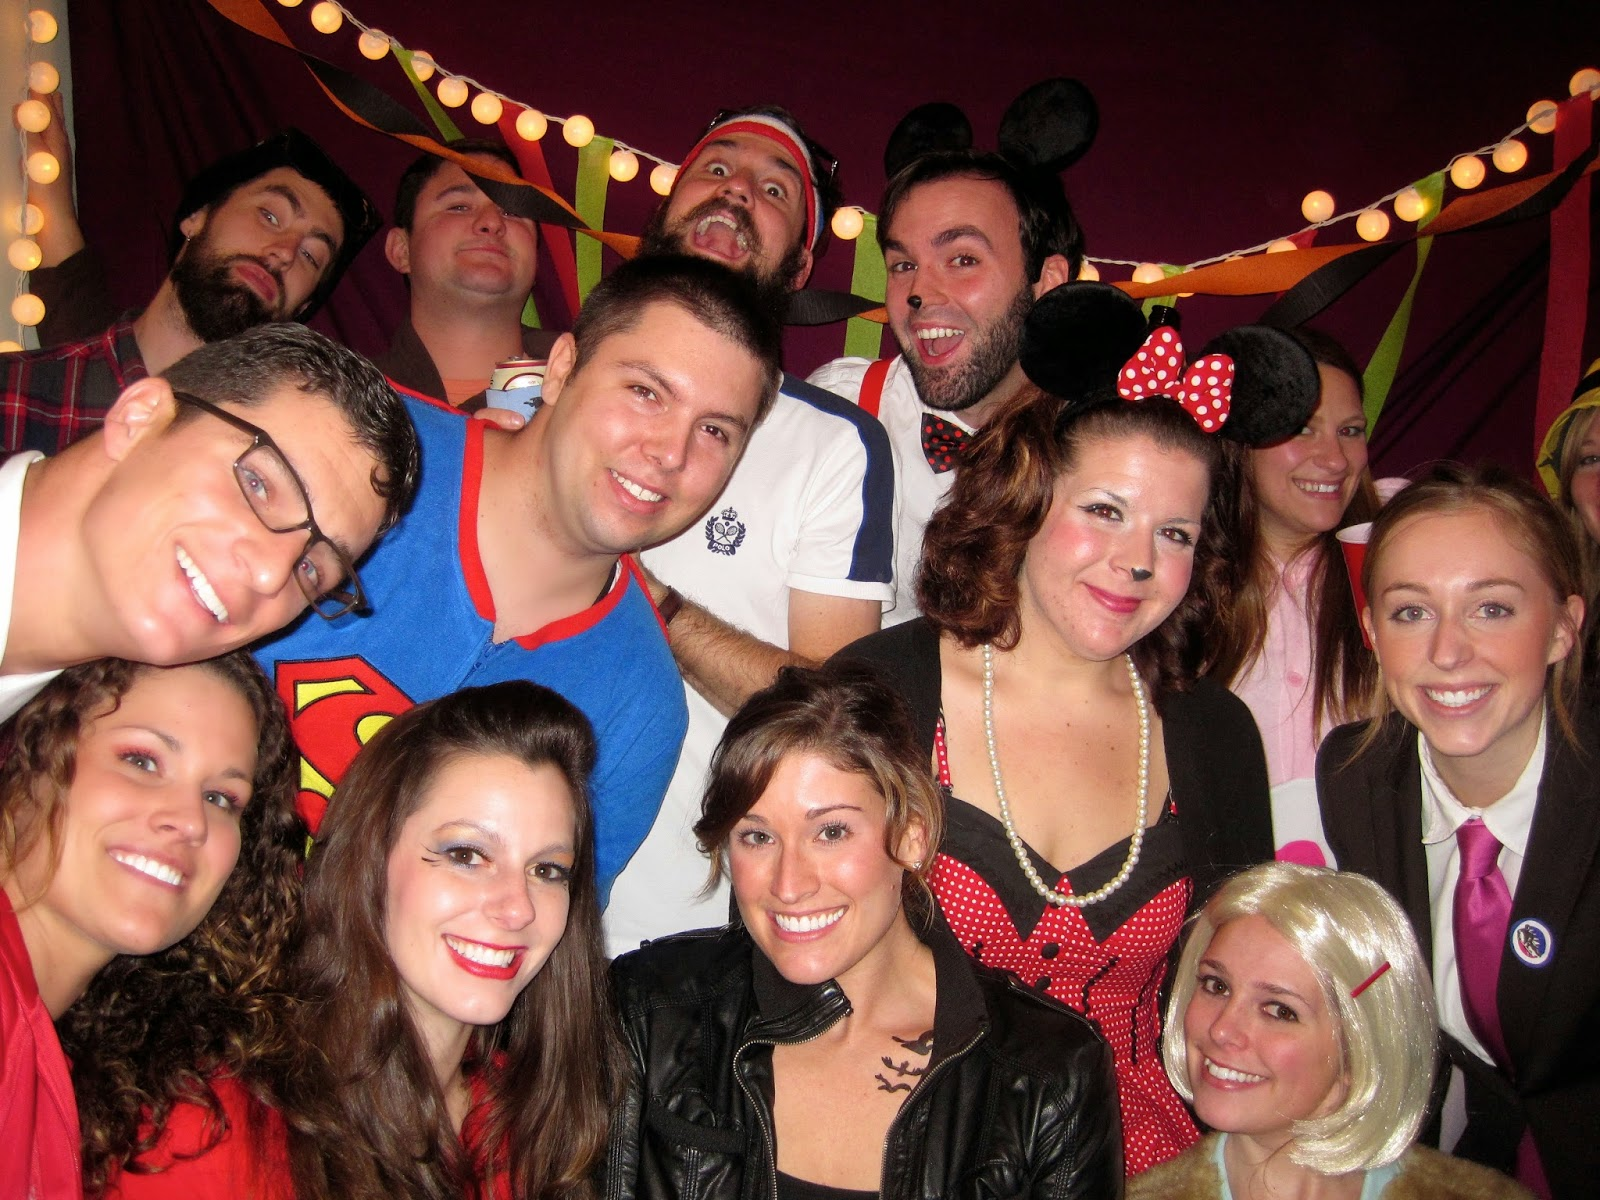 Boos & Booze: Our Halloween Party! - The Surznick Common Room